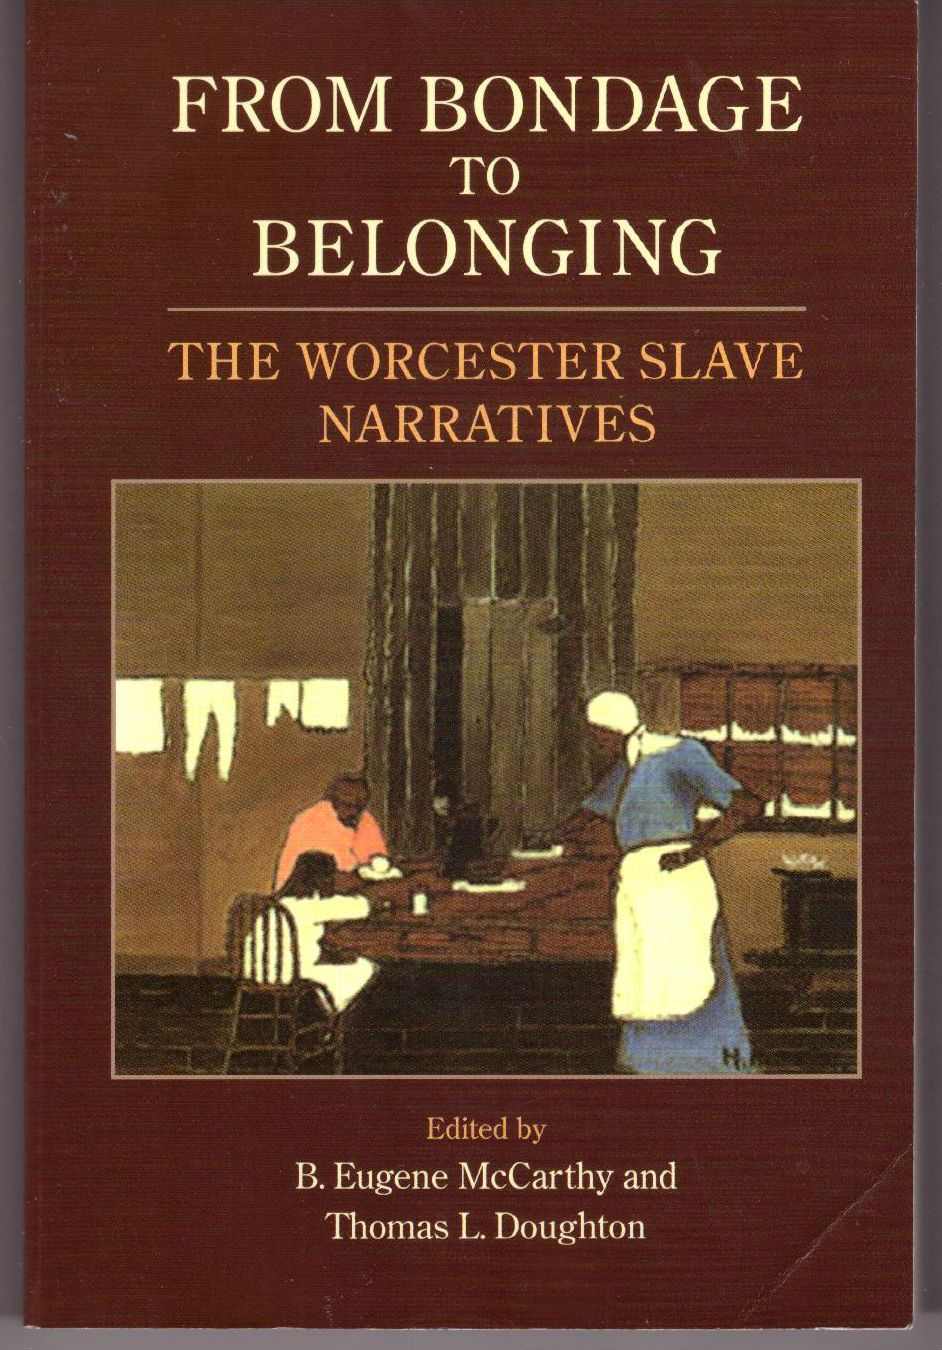 From Bondage to Belonging: The Worcester Slave Narratives